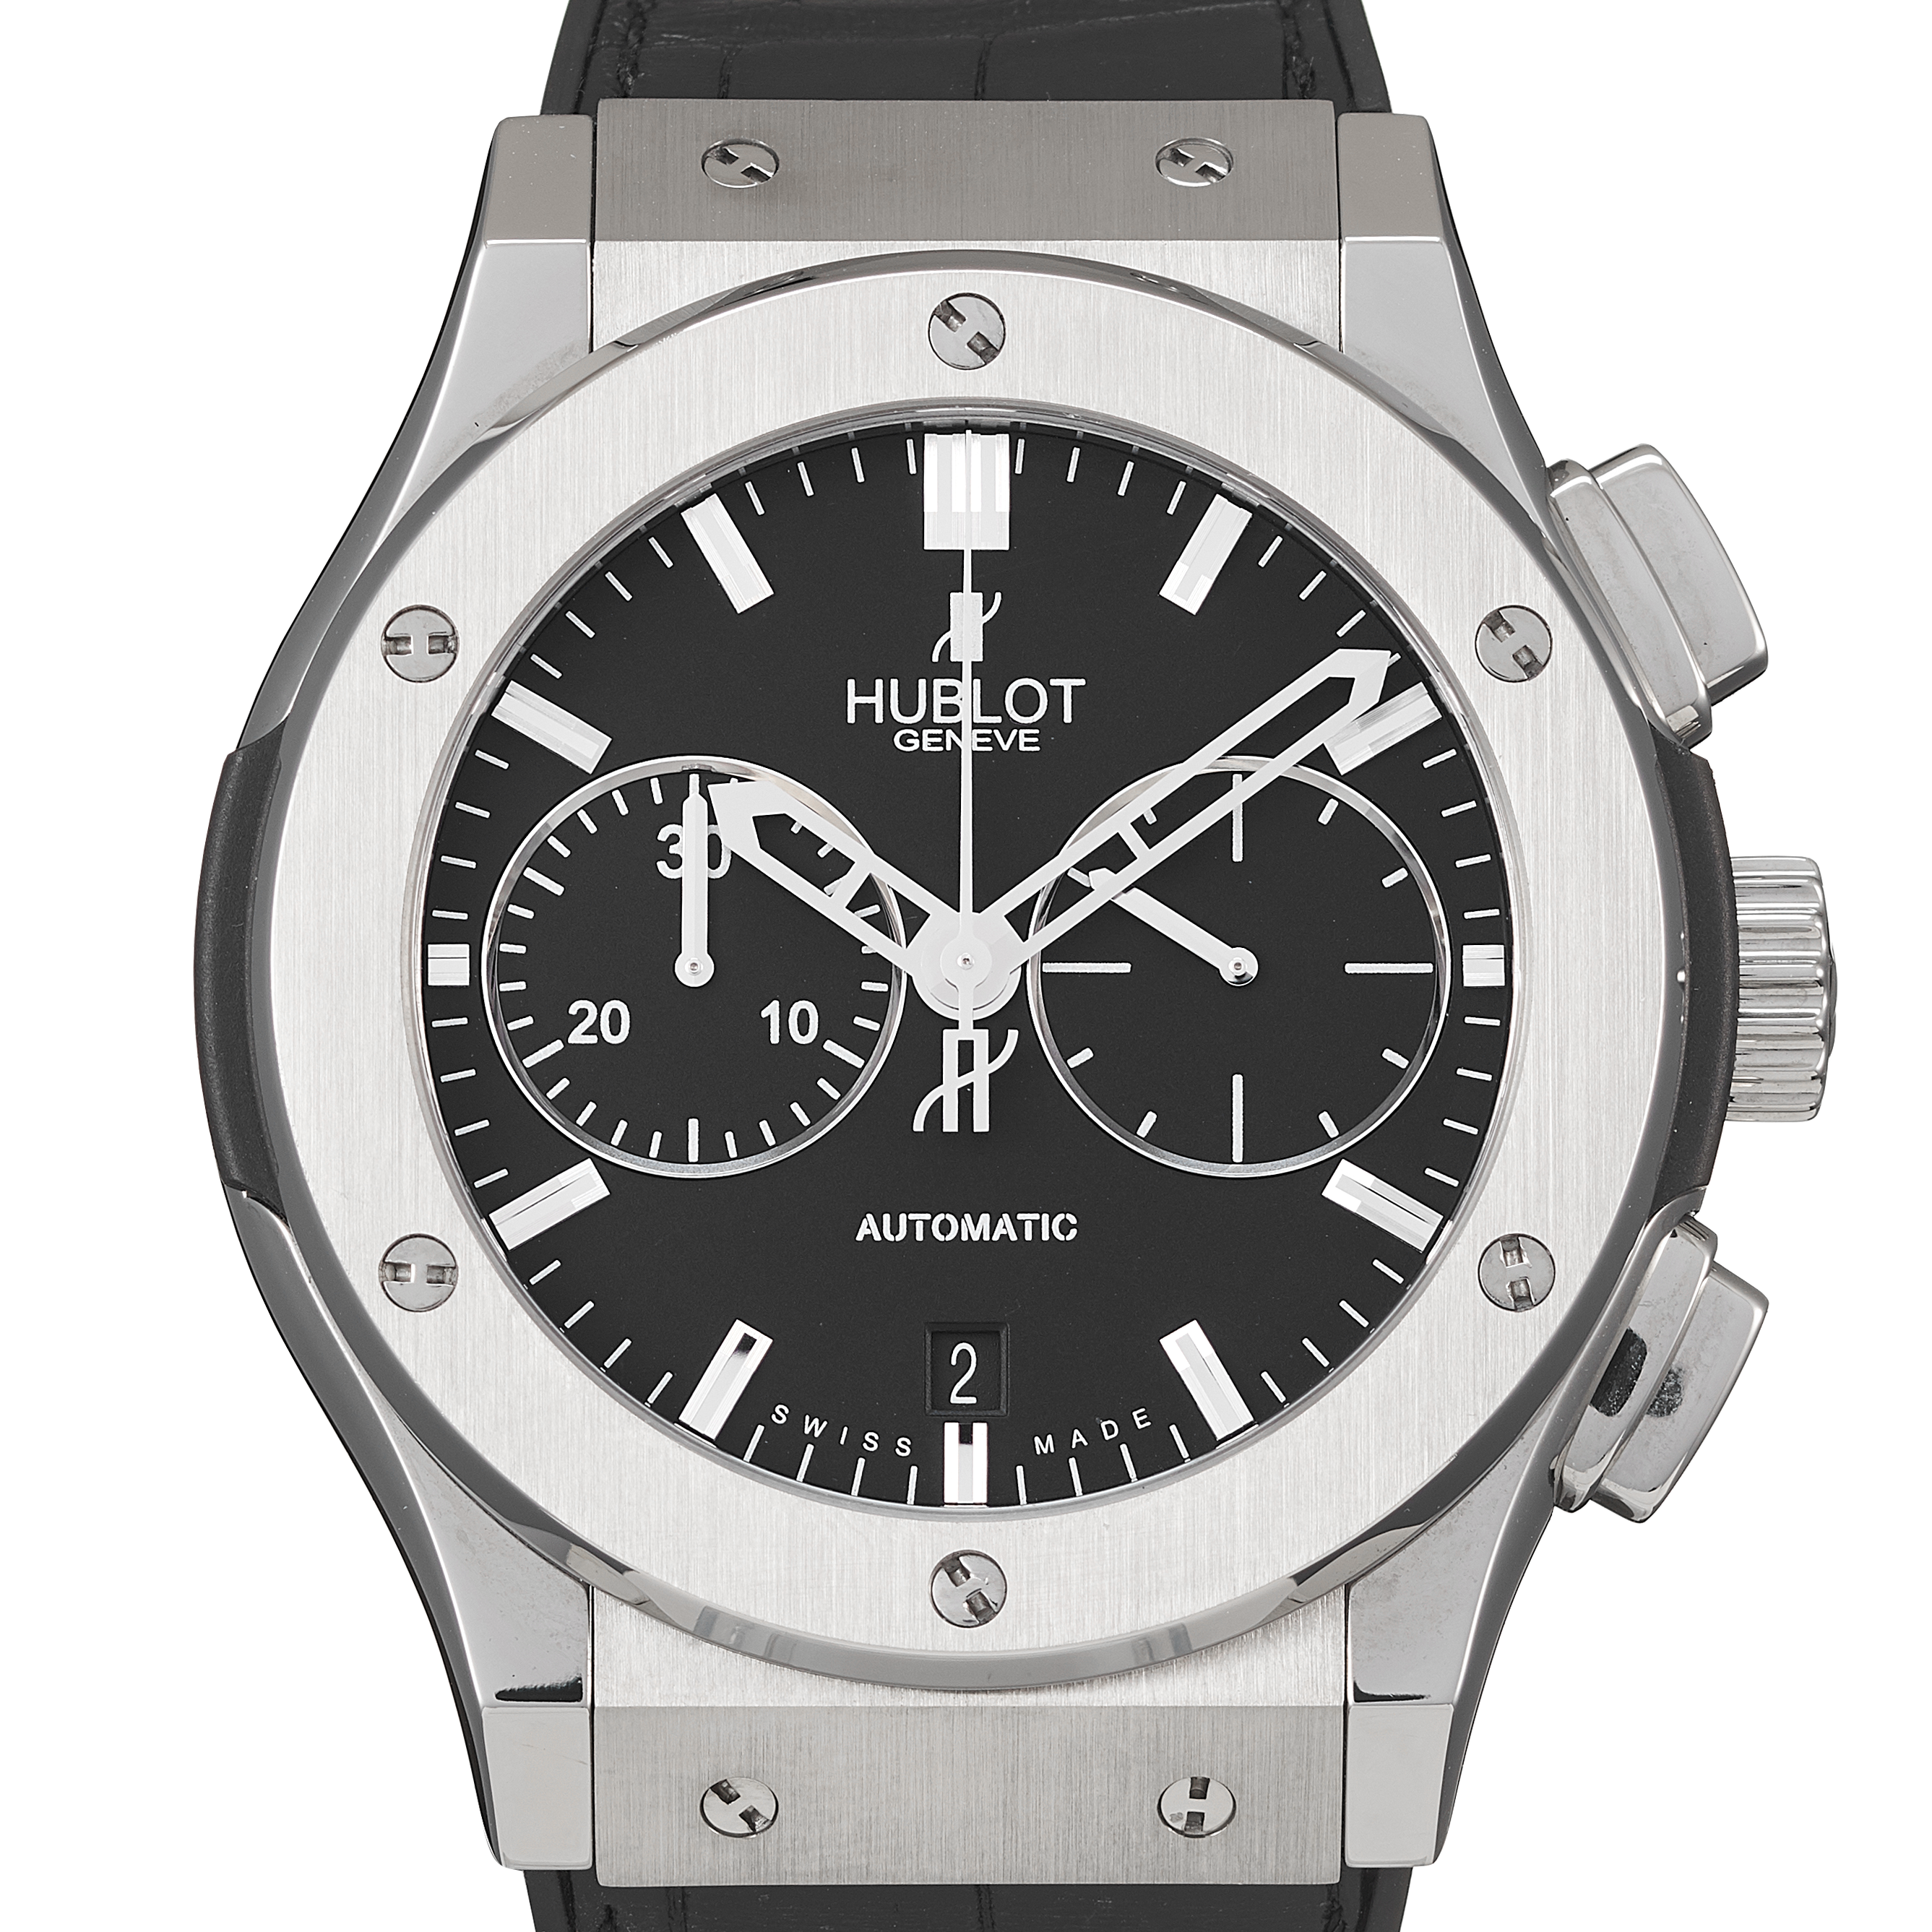 Hublot Classic Fusion Chronograph Stainless Steel - 521.NX1170.LR